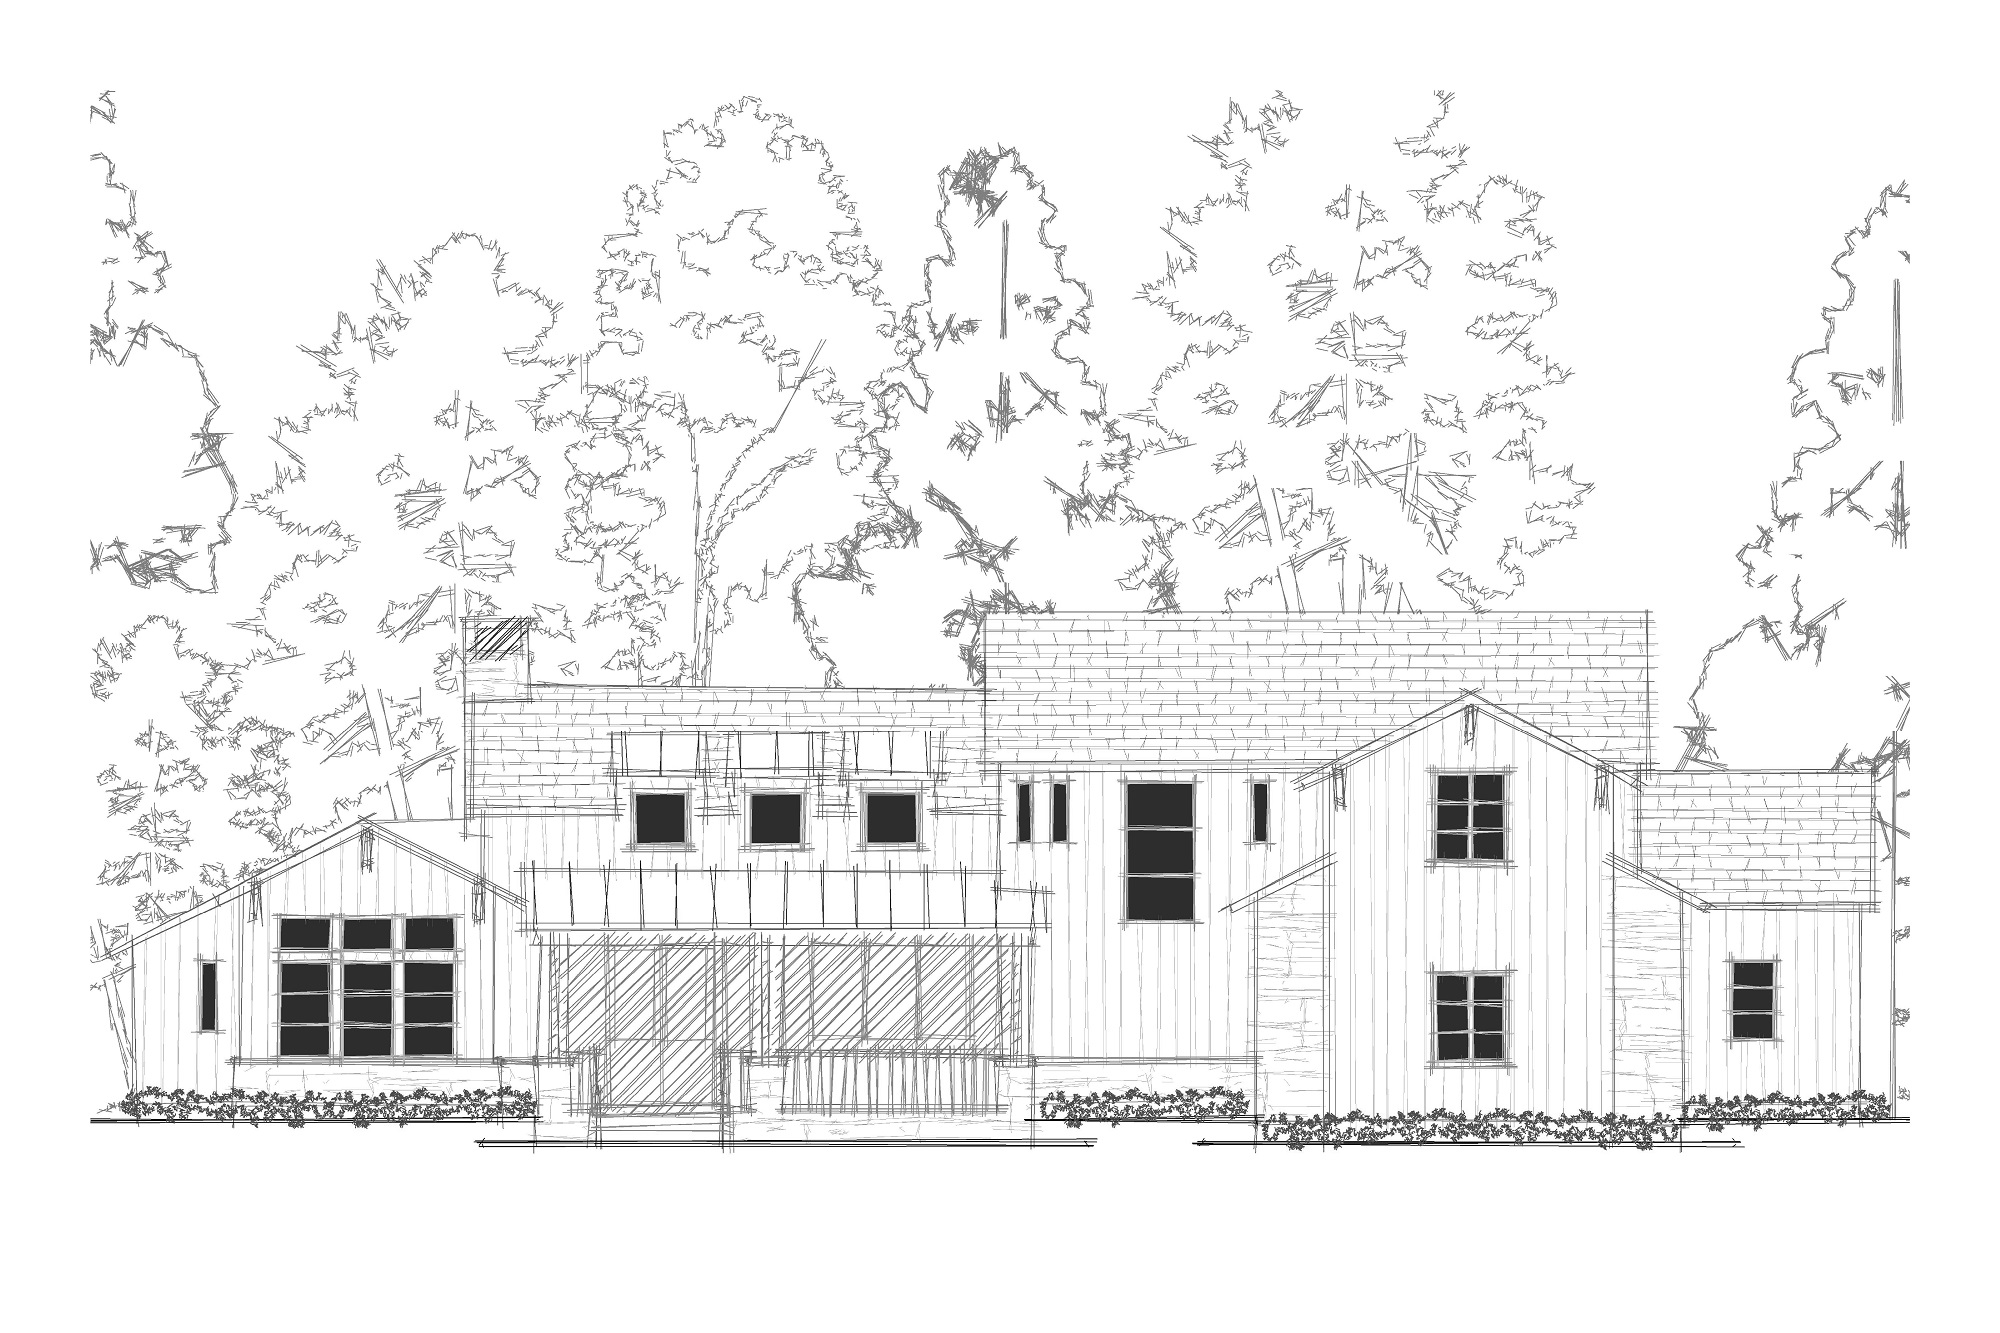 066 Church Residence-A0.0 COVER - 24x36-page-001.jpg